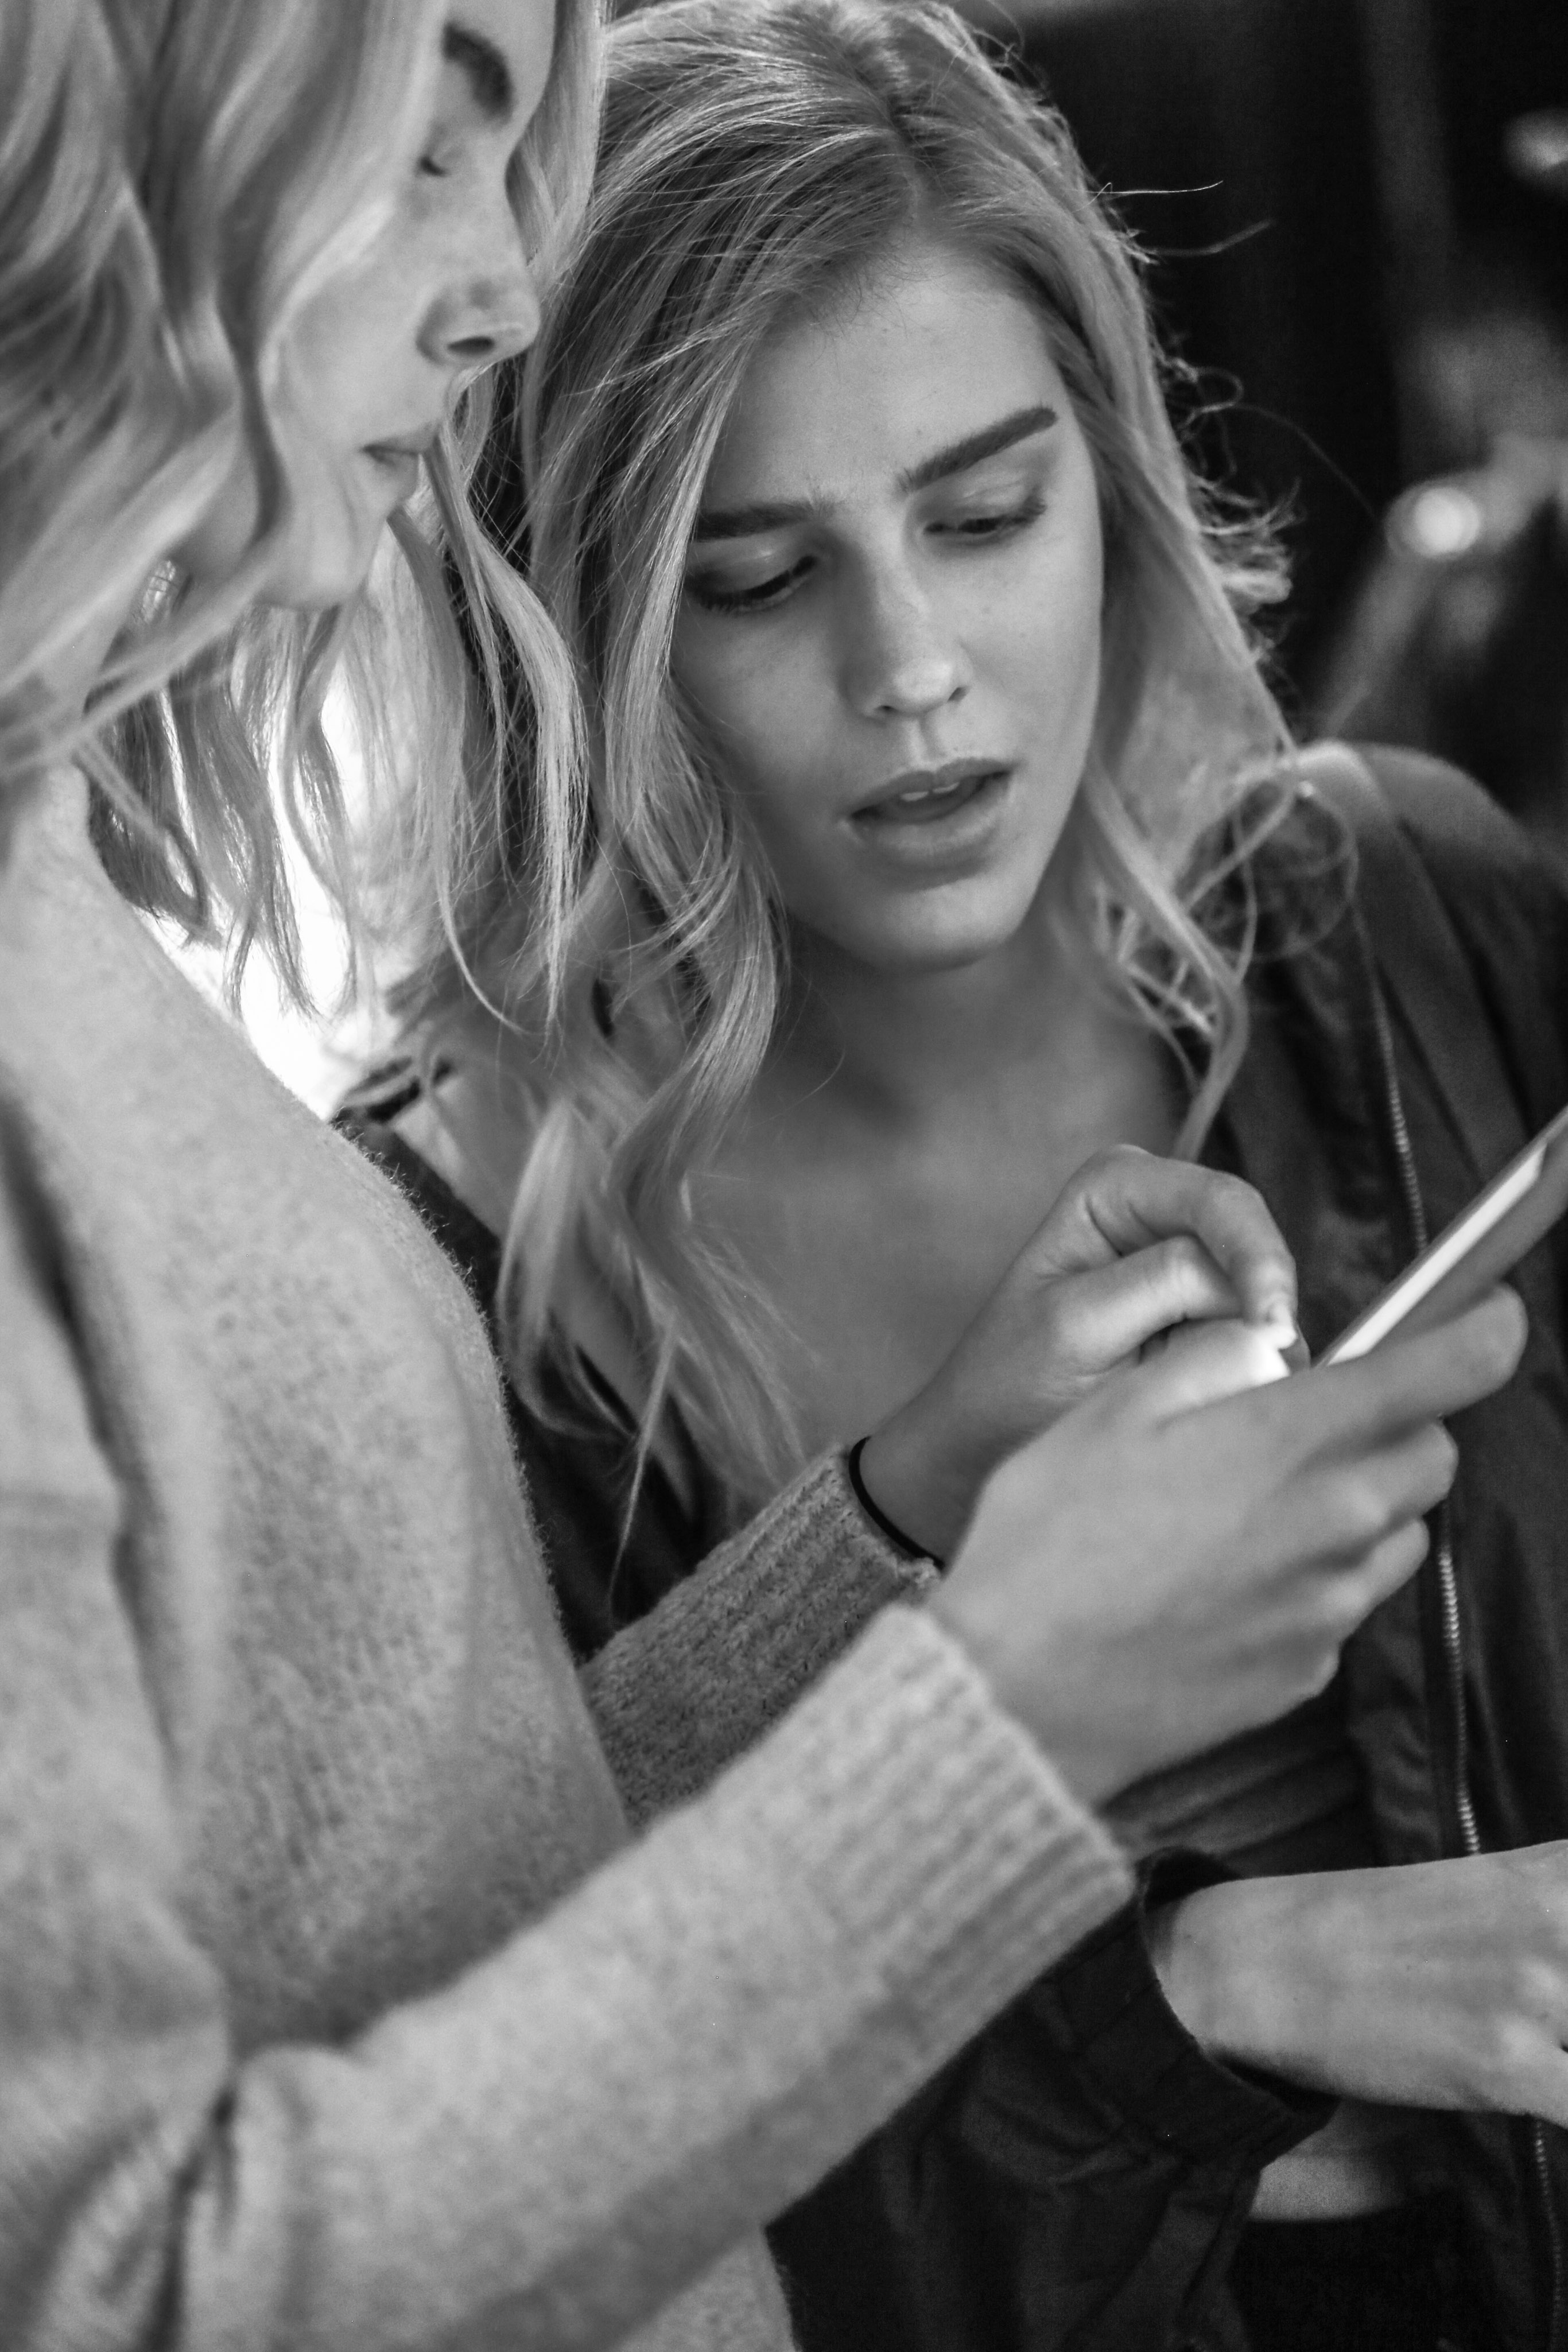 paul-mitchell-Power of Social Media-con-blog-image-models-phone-new